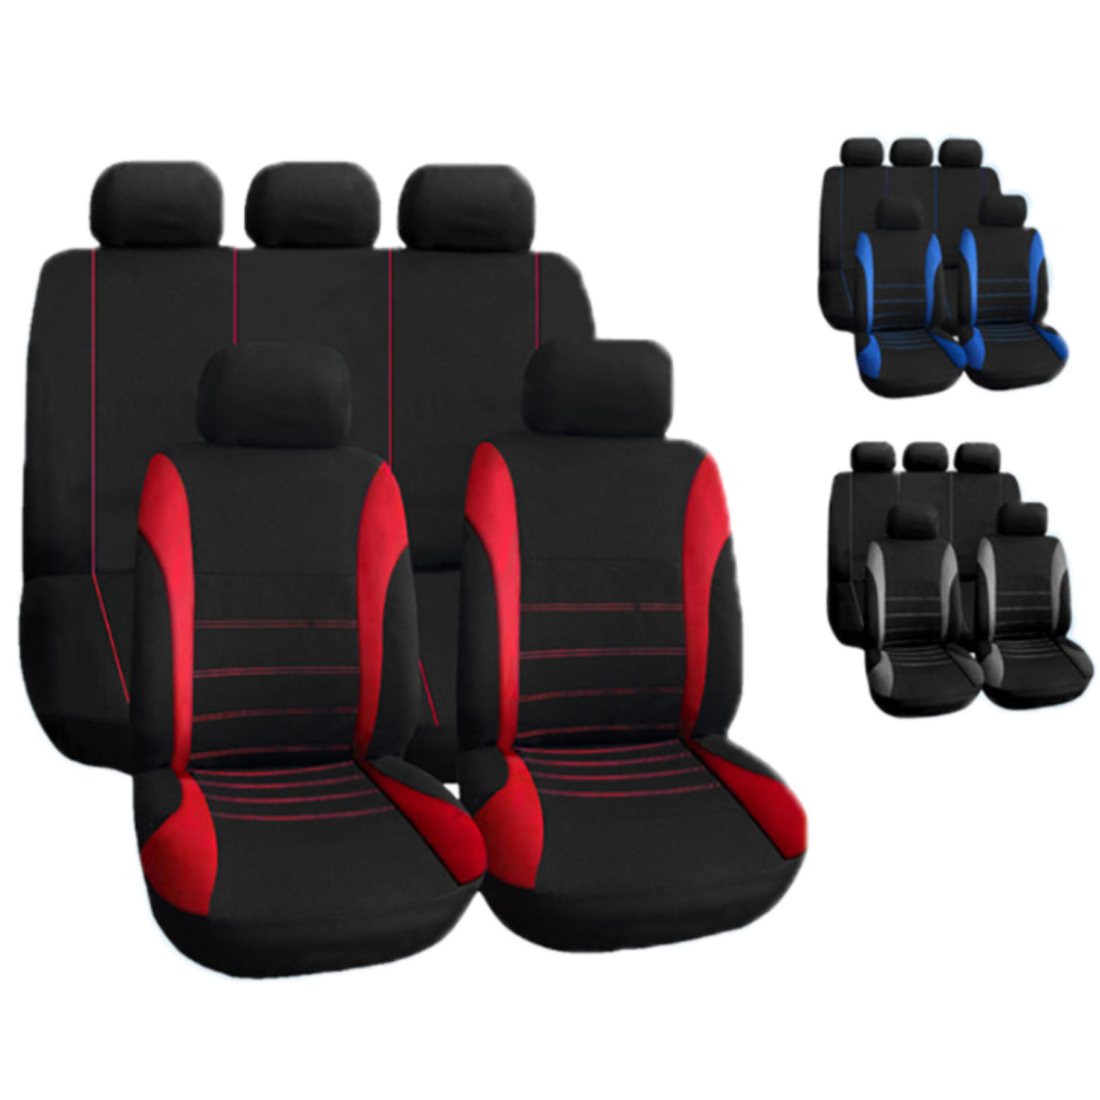 Dewtreetali 9Pcs/Set Universal Car Seat Cover Polyester Car Front Back Seat Cushion Covers Protector Car Styling Interior Access dewtreetali universal automoblies seat cover four seaons car seat protector full set car accessories car styling for vw bmw audi